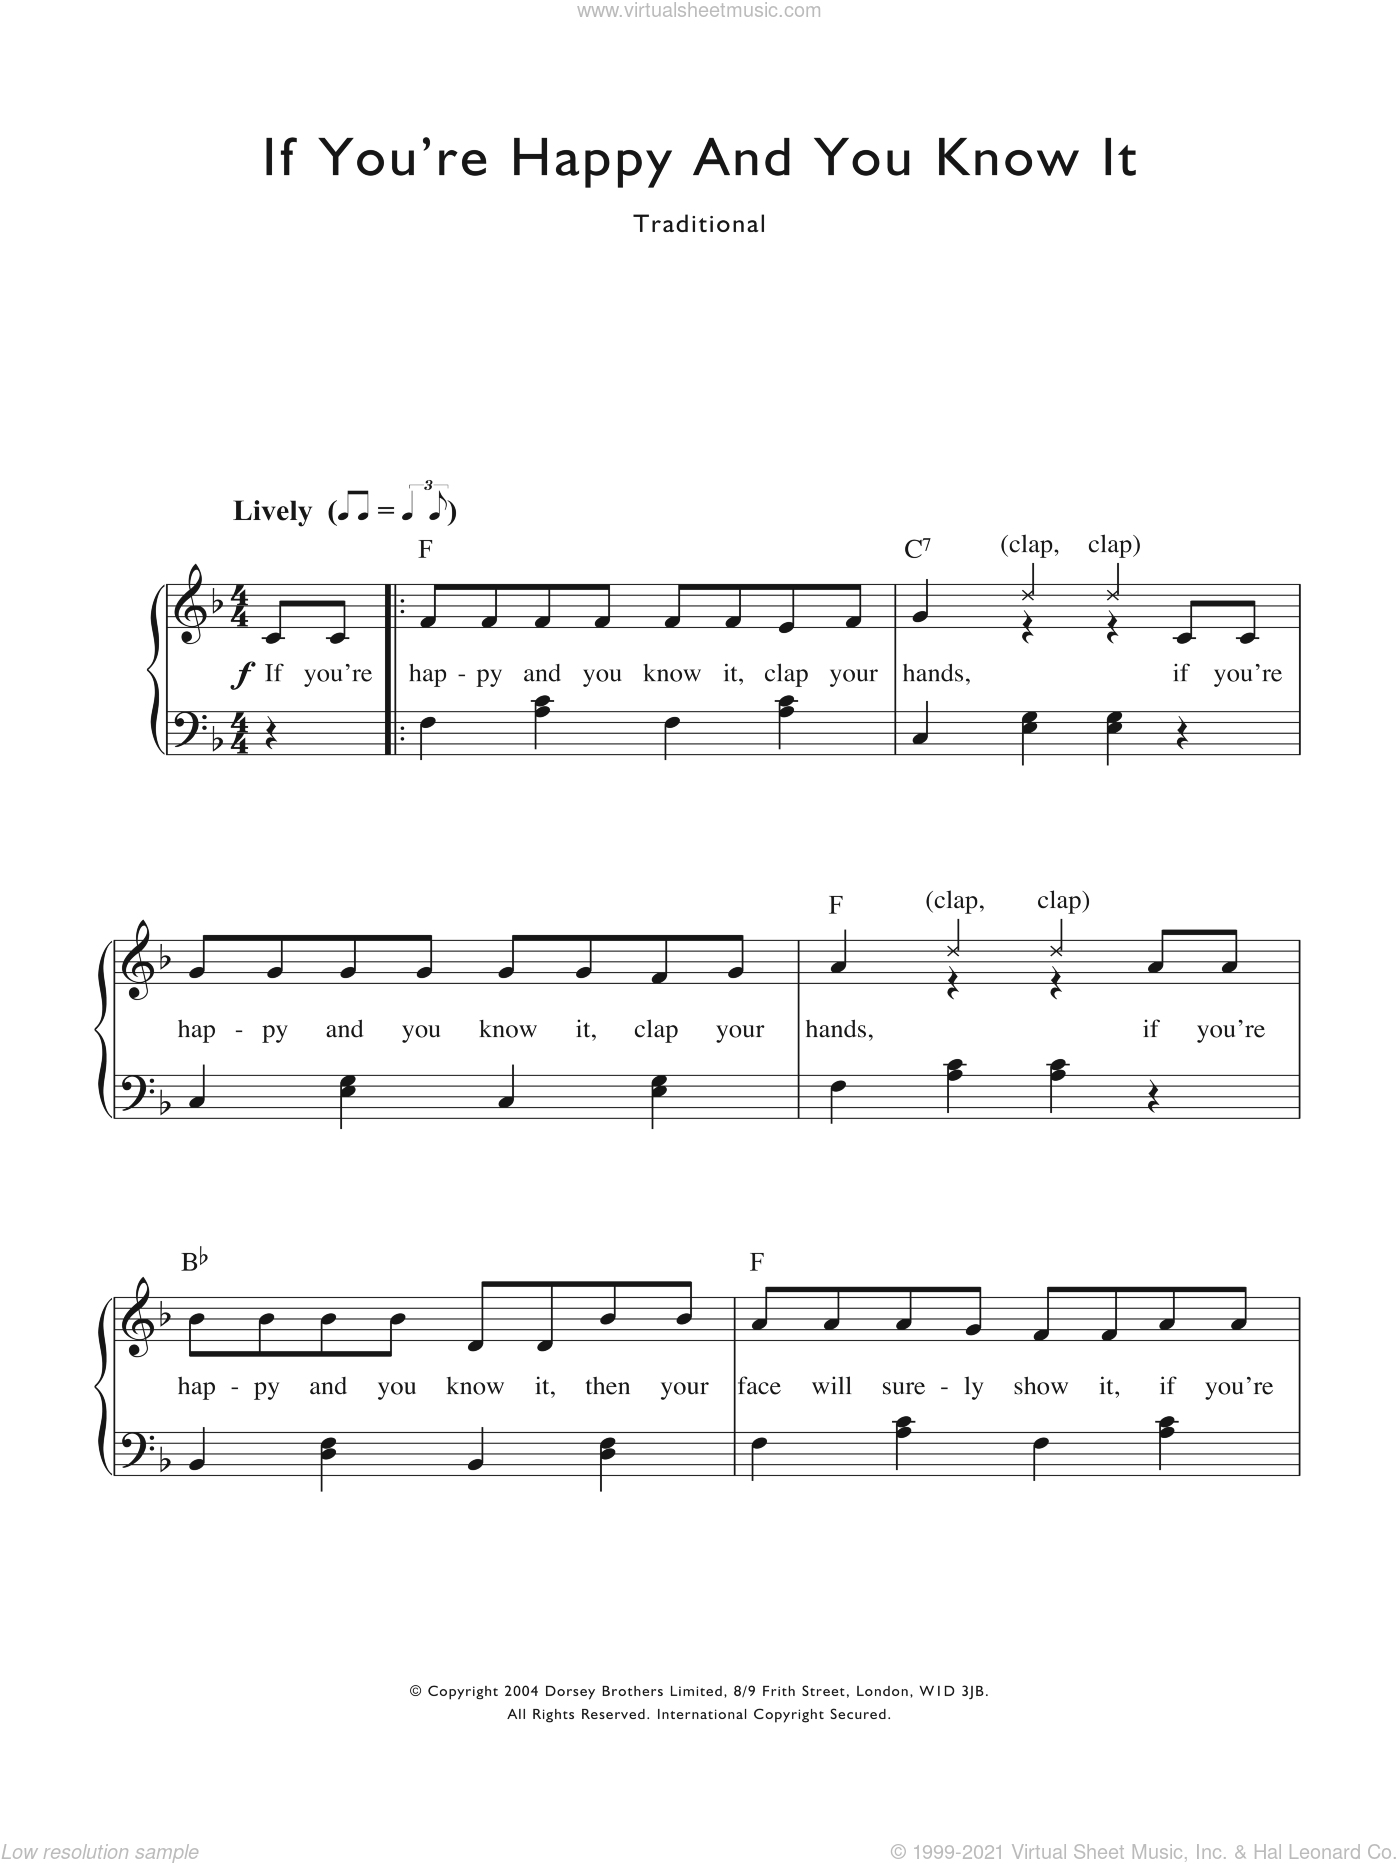 If You're Happy And You Know It sheet music for voice and piano by Alfred B. Smith. Score Image Preview.